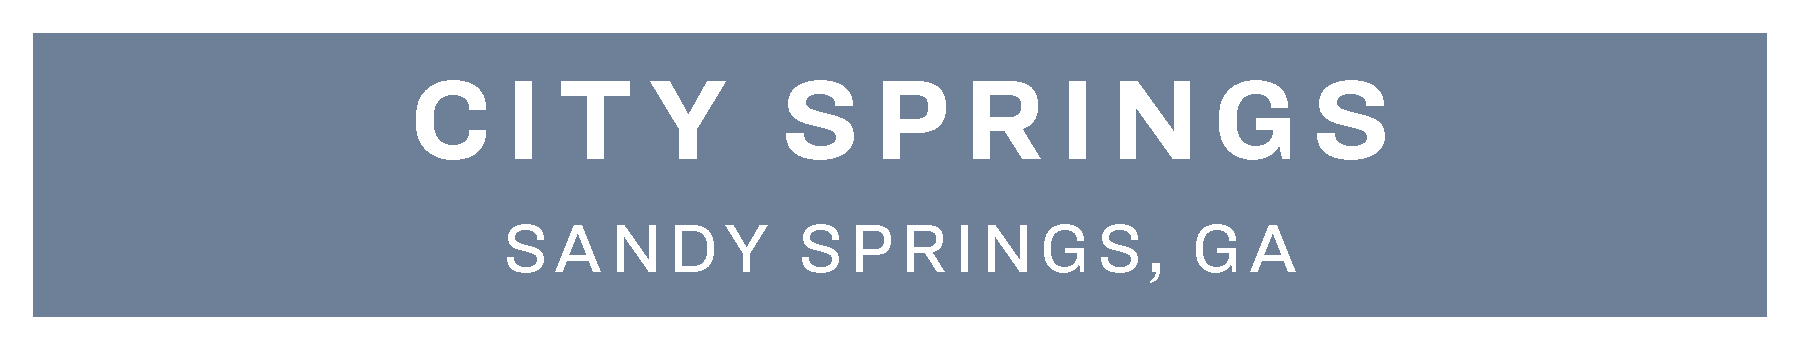 City Springs Topper 08 2019